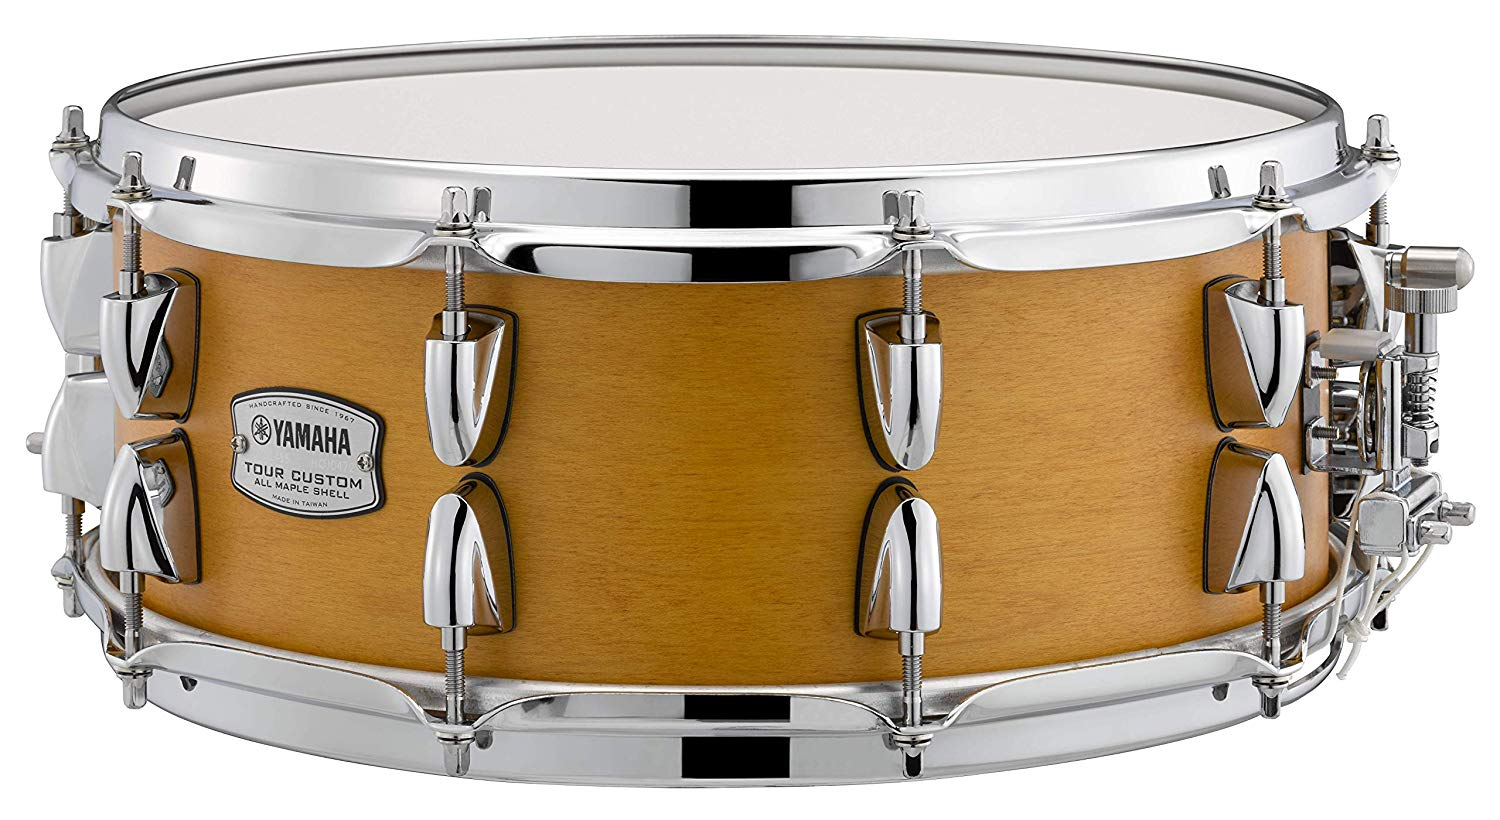 Yamaha Tour Custom Snare Drum